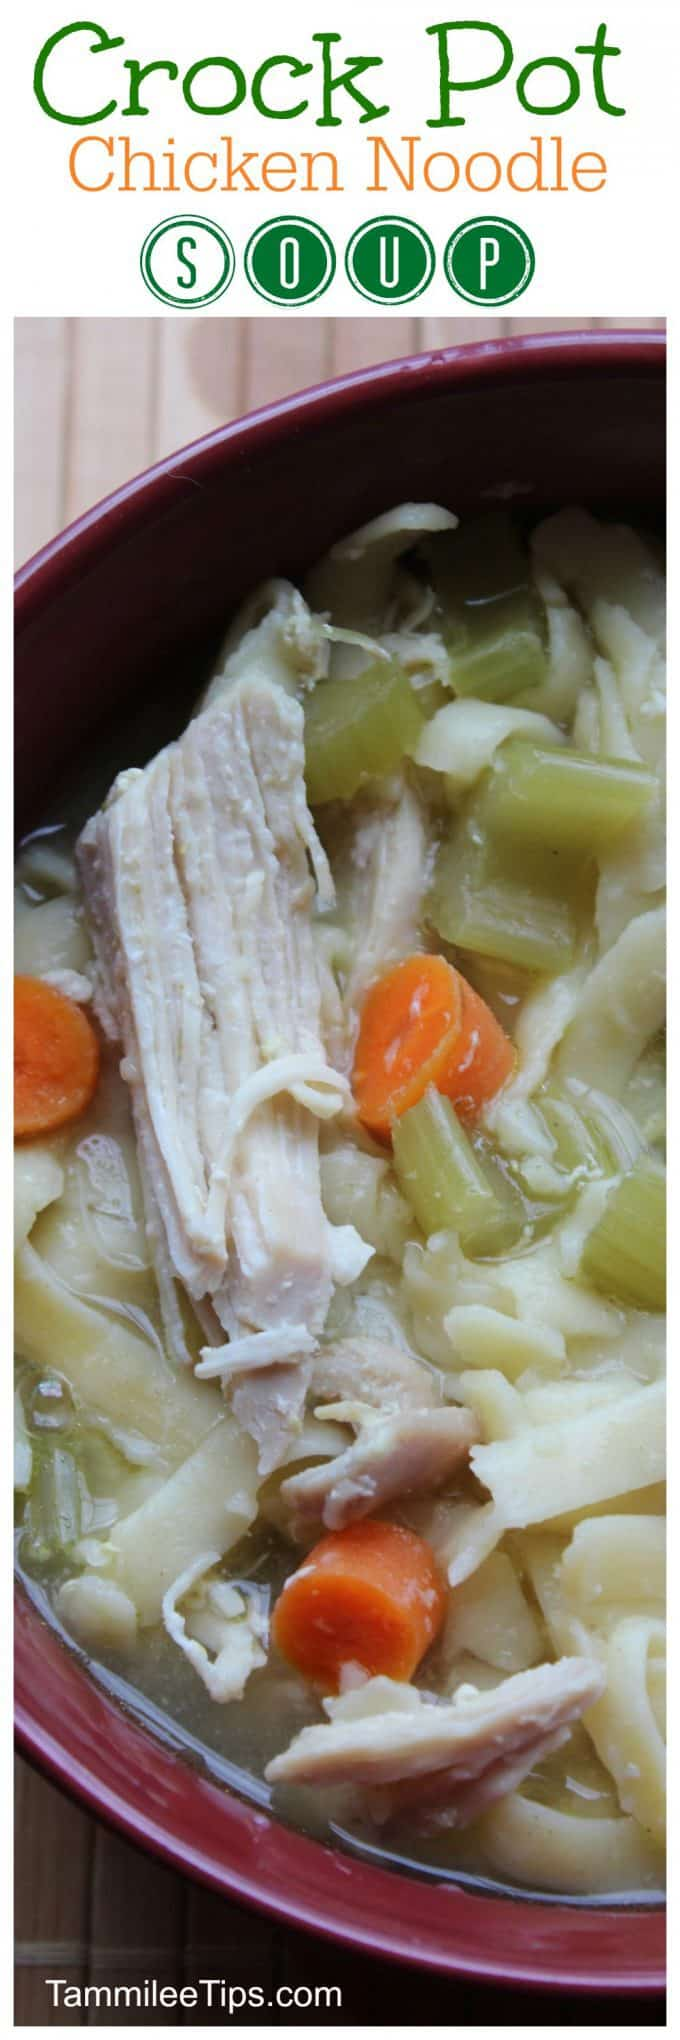 Easy Homemade Slow Cooker CrockPot Chicken Noodle Soup Recipe! The crock pot does all the work and you have a family meal that is the perfect winter comfort food.